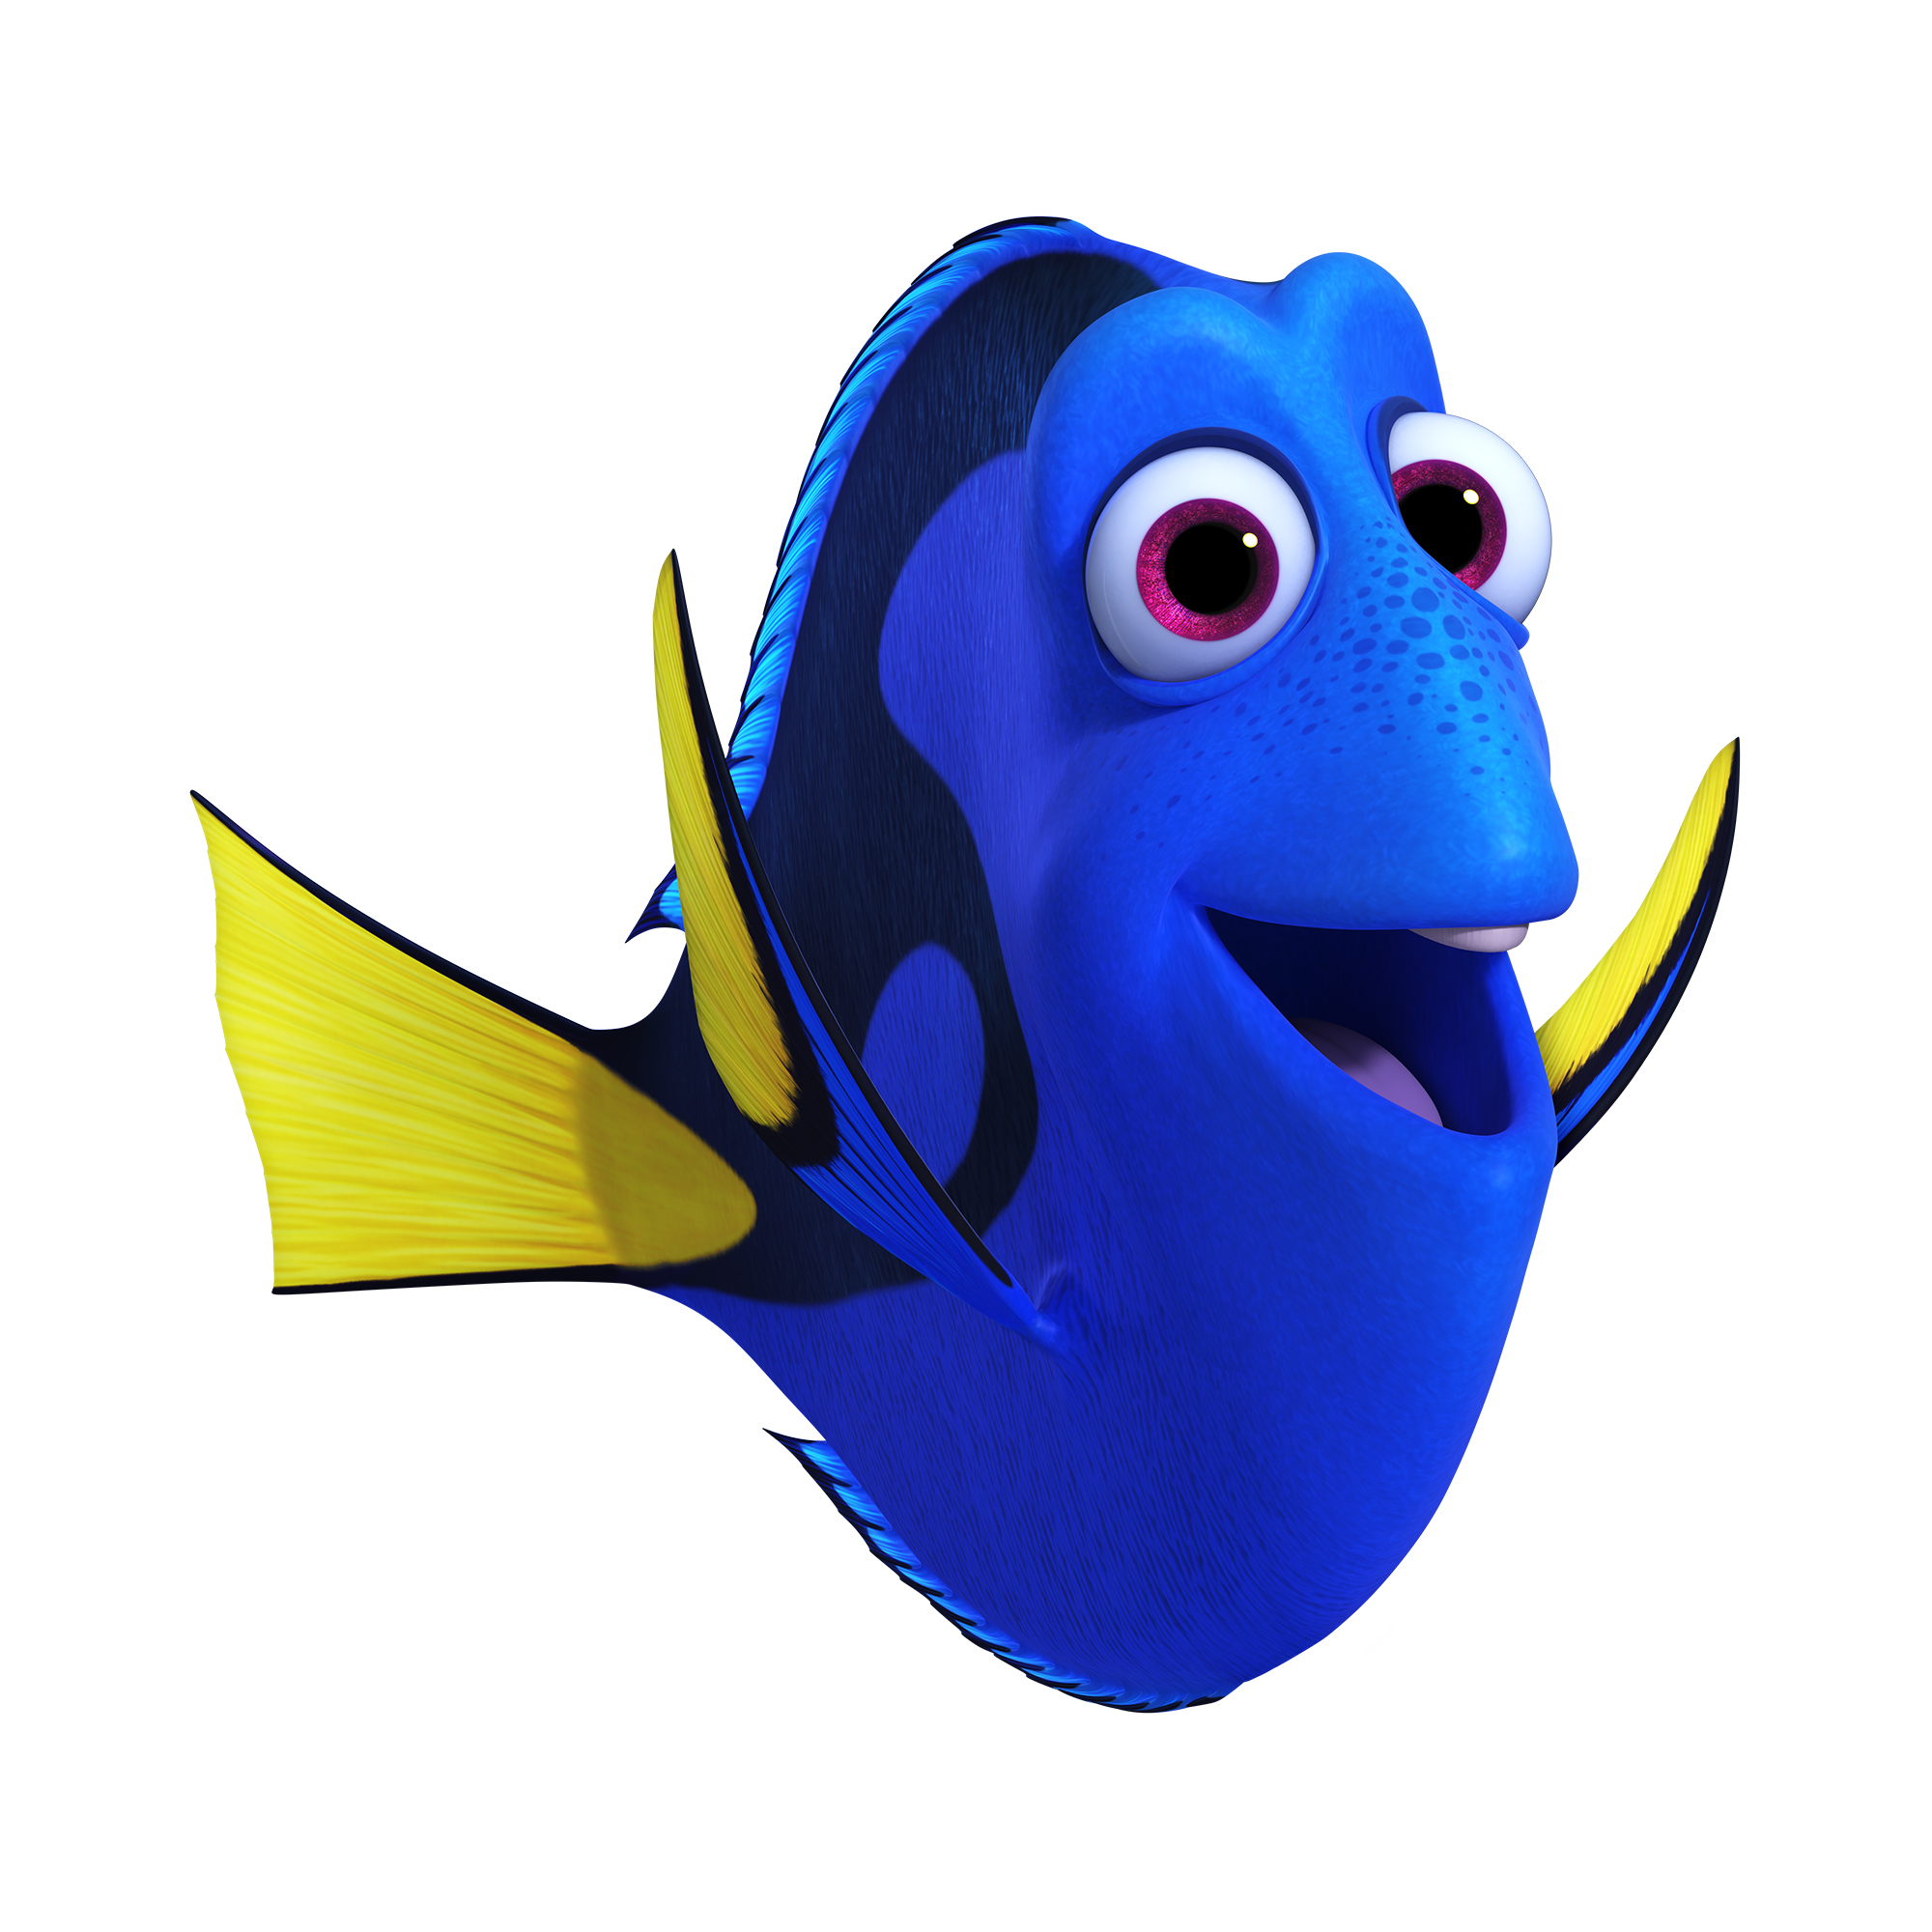 Dory | Pixar Wiki | FANDOM powered by Wikia